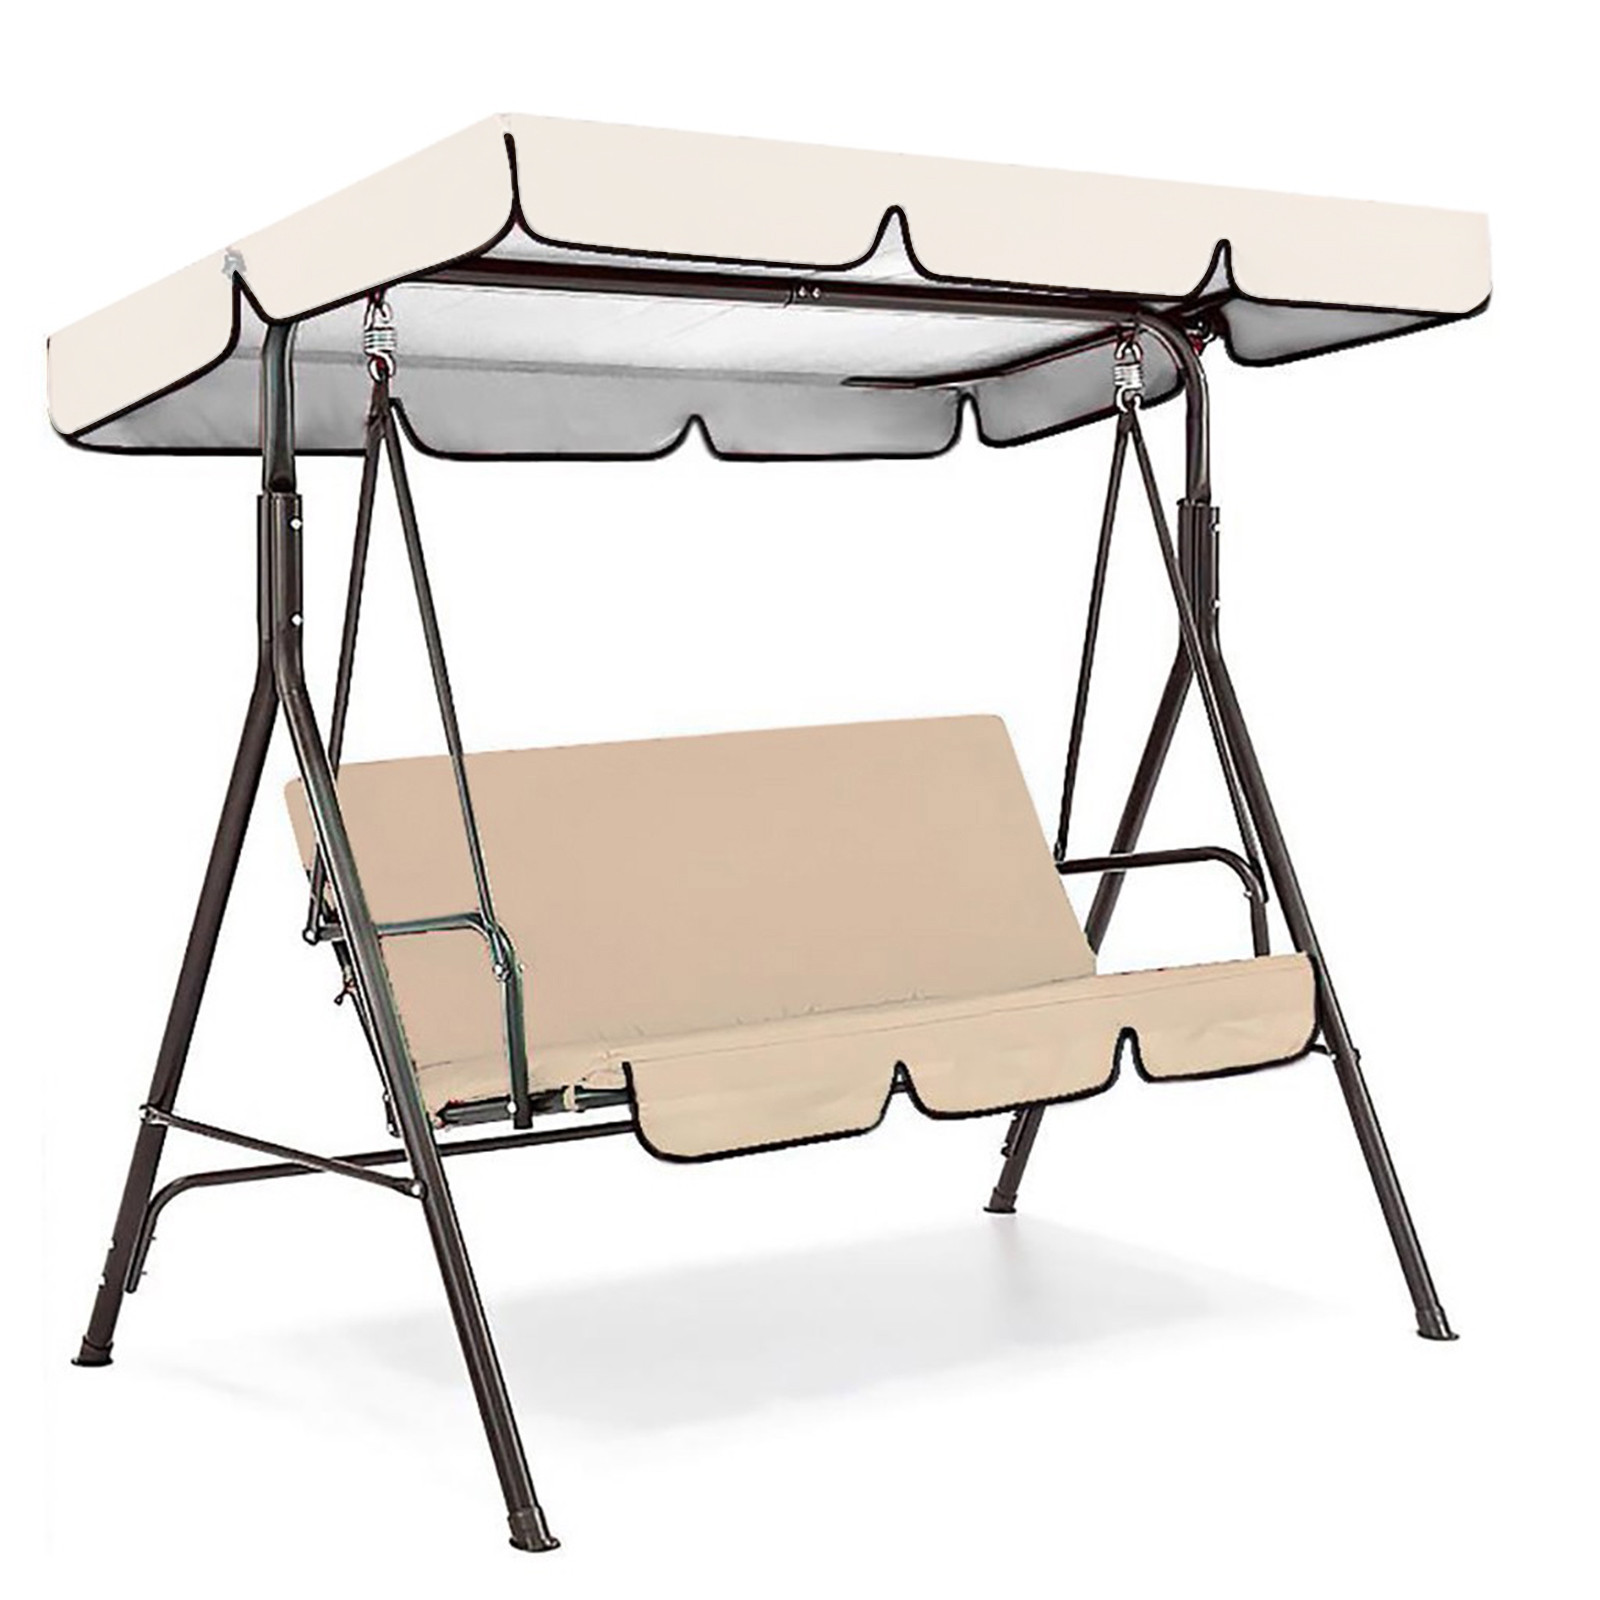 6 Seat Swing Canopies Seat Cushion Cover Set Patio Swing Chair Hammock Replacement Waterproof Garden 2021 New Hot Sale